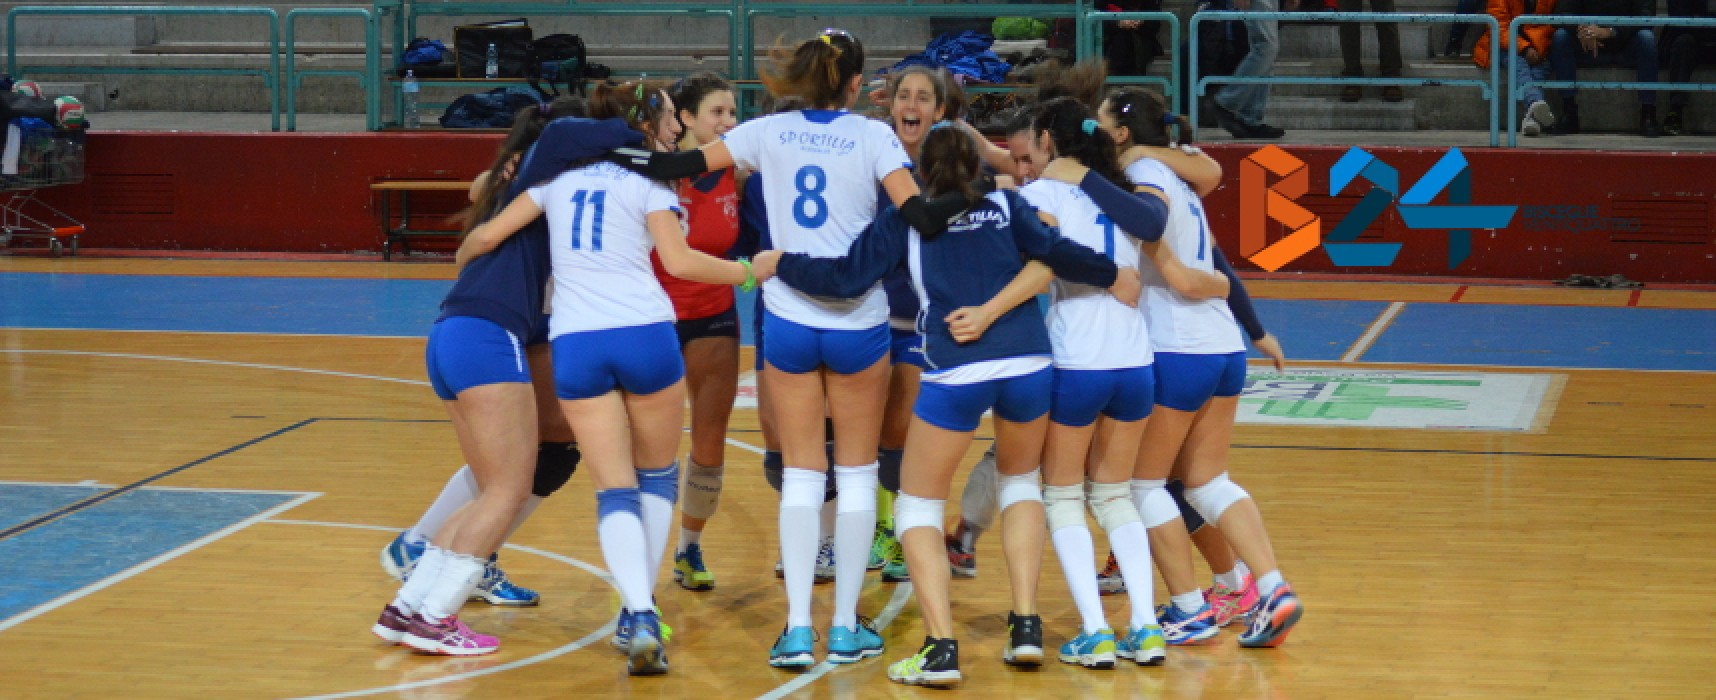 Riecco Sportilia, 3-0 al Volley Barletta